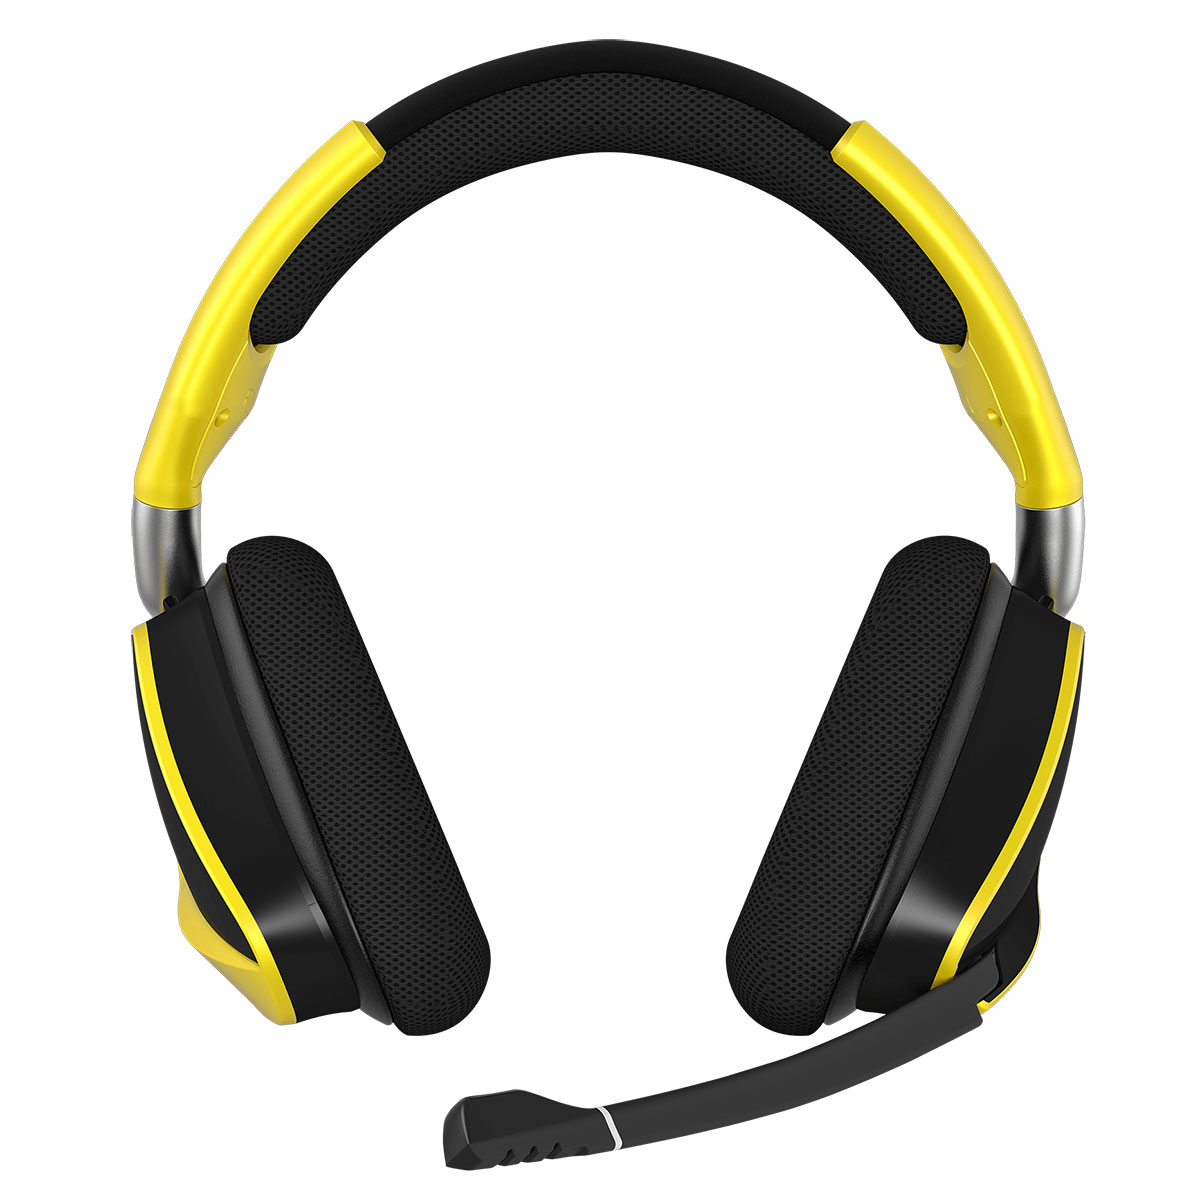 images/attachment/azaudio-corsair-void-v2-wireless-se-yellow-3.jpg